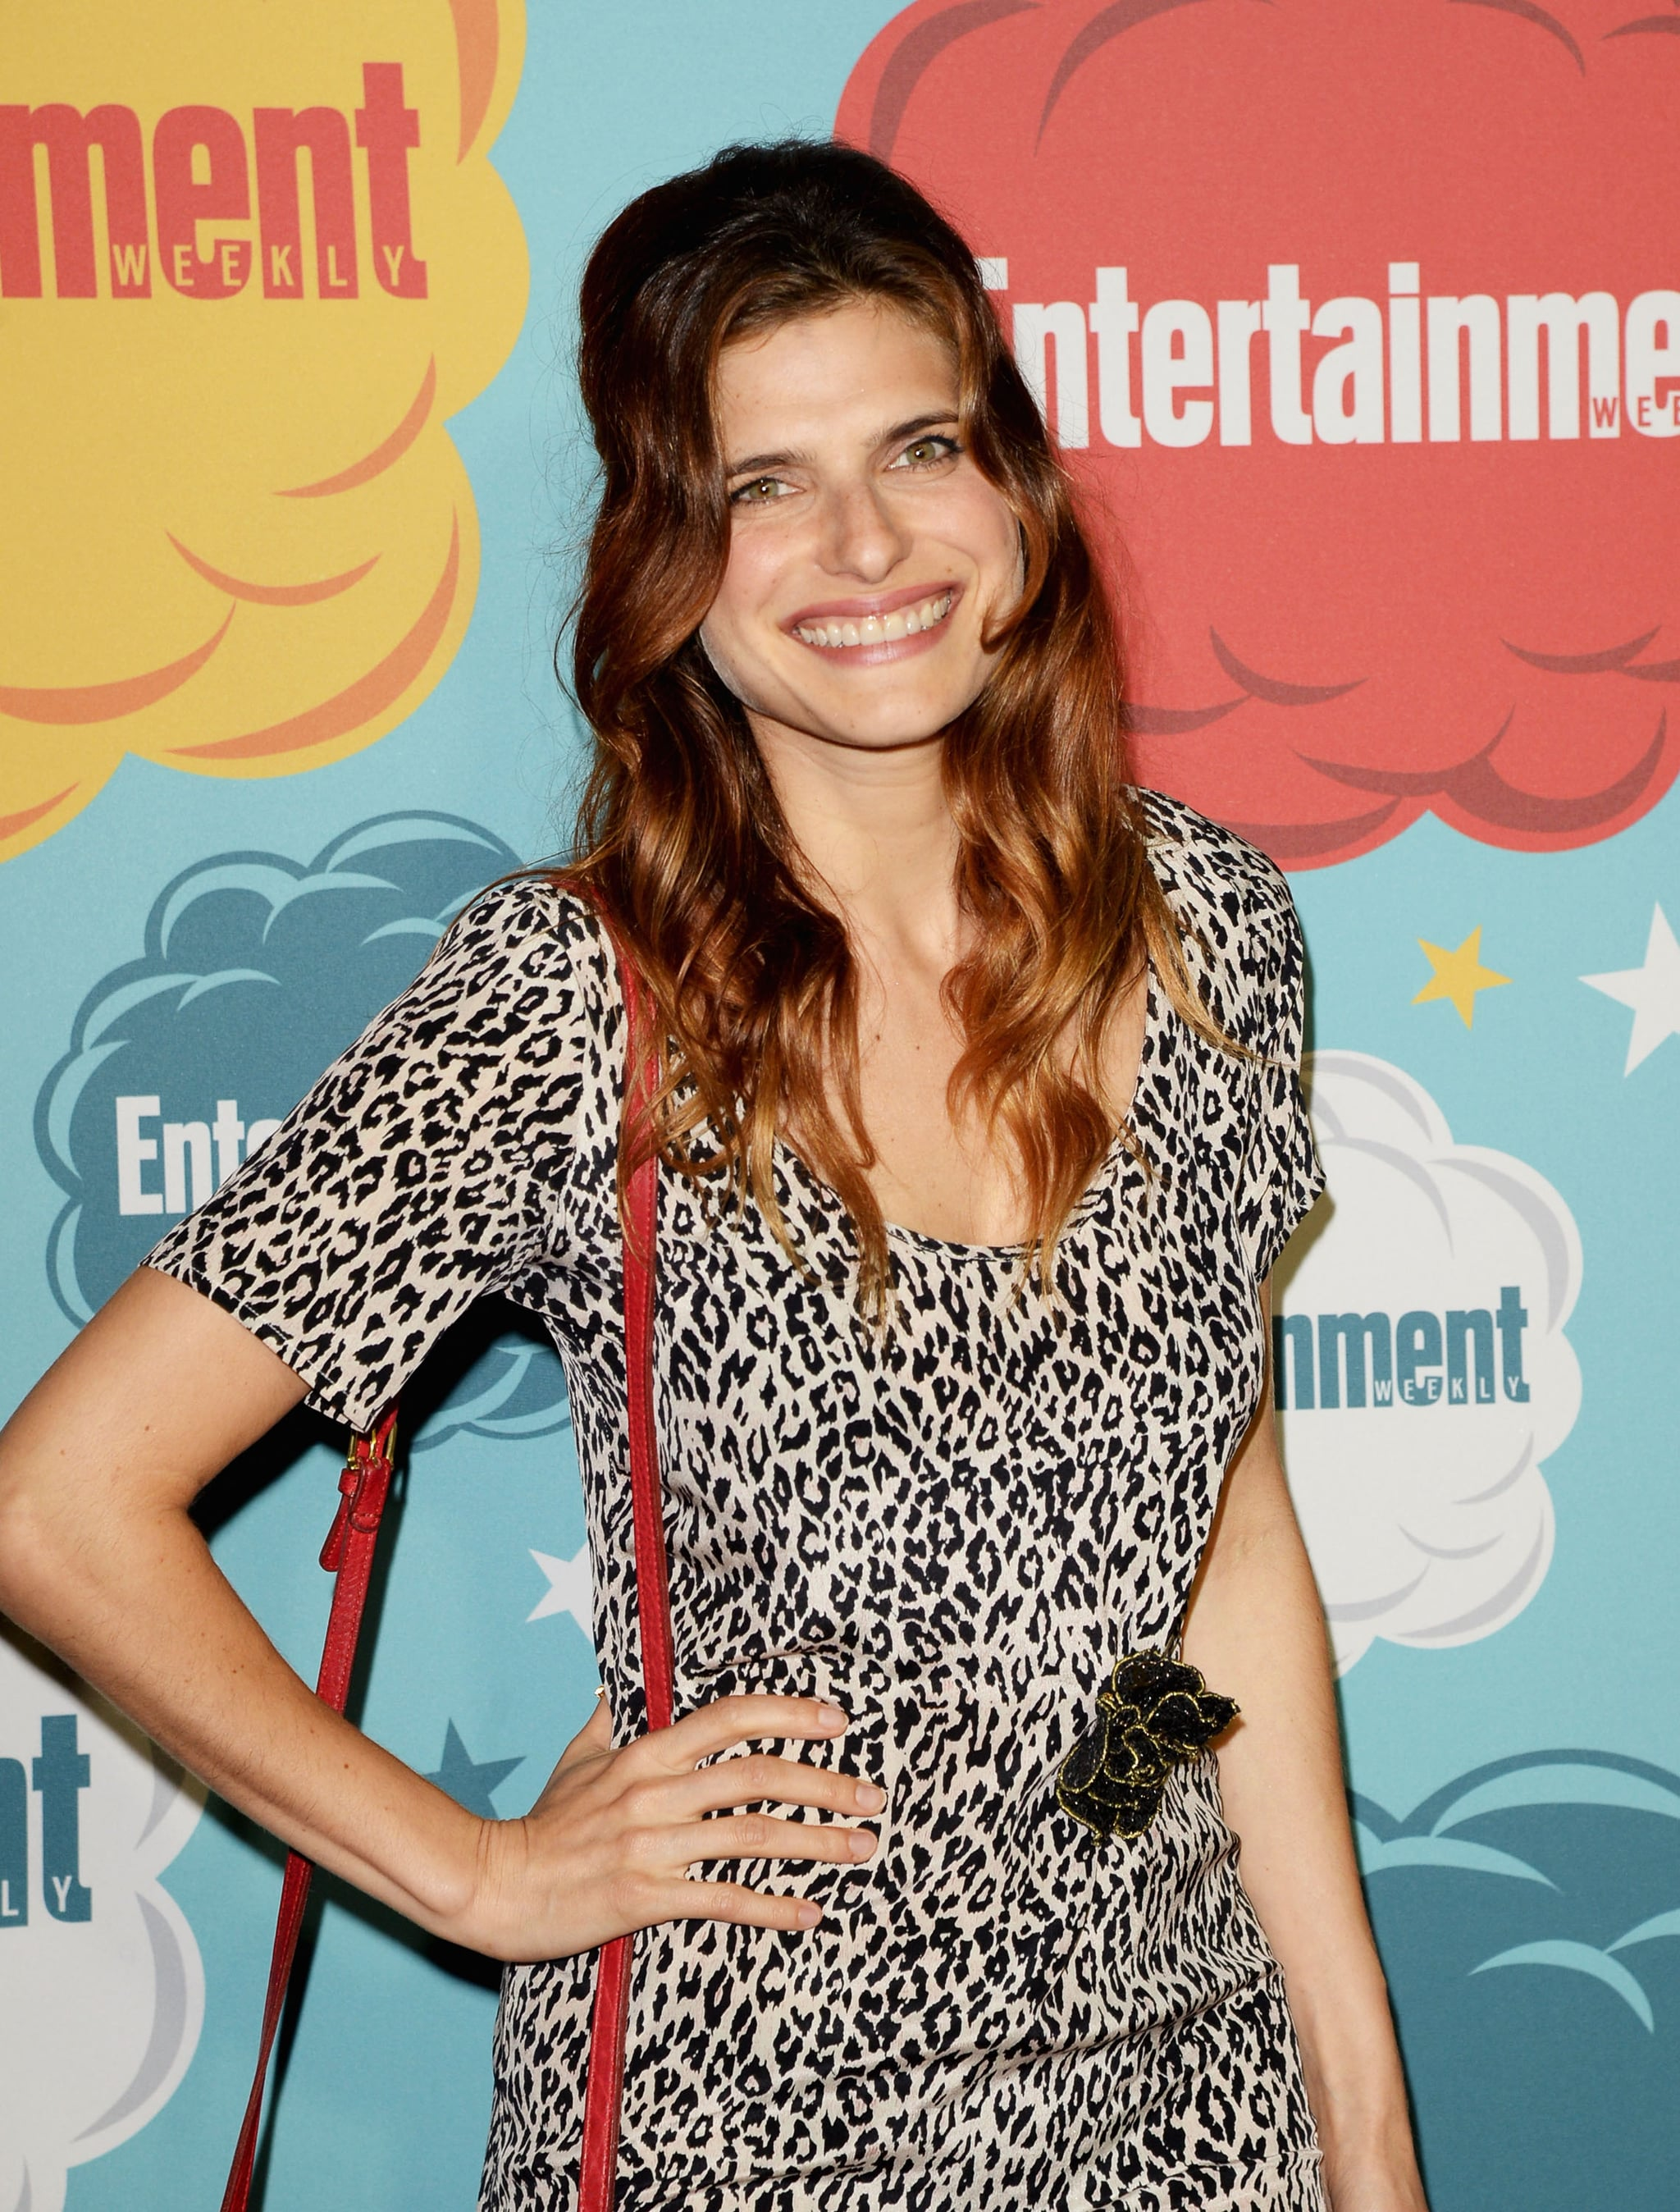 Lake Bell looked darling with a half-up style that showed off her gorgeous Summer highlights.